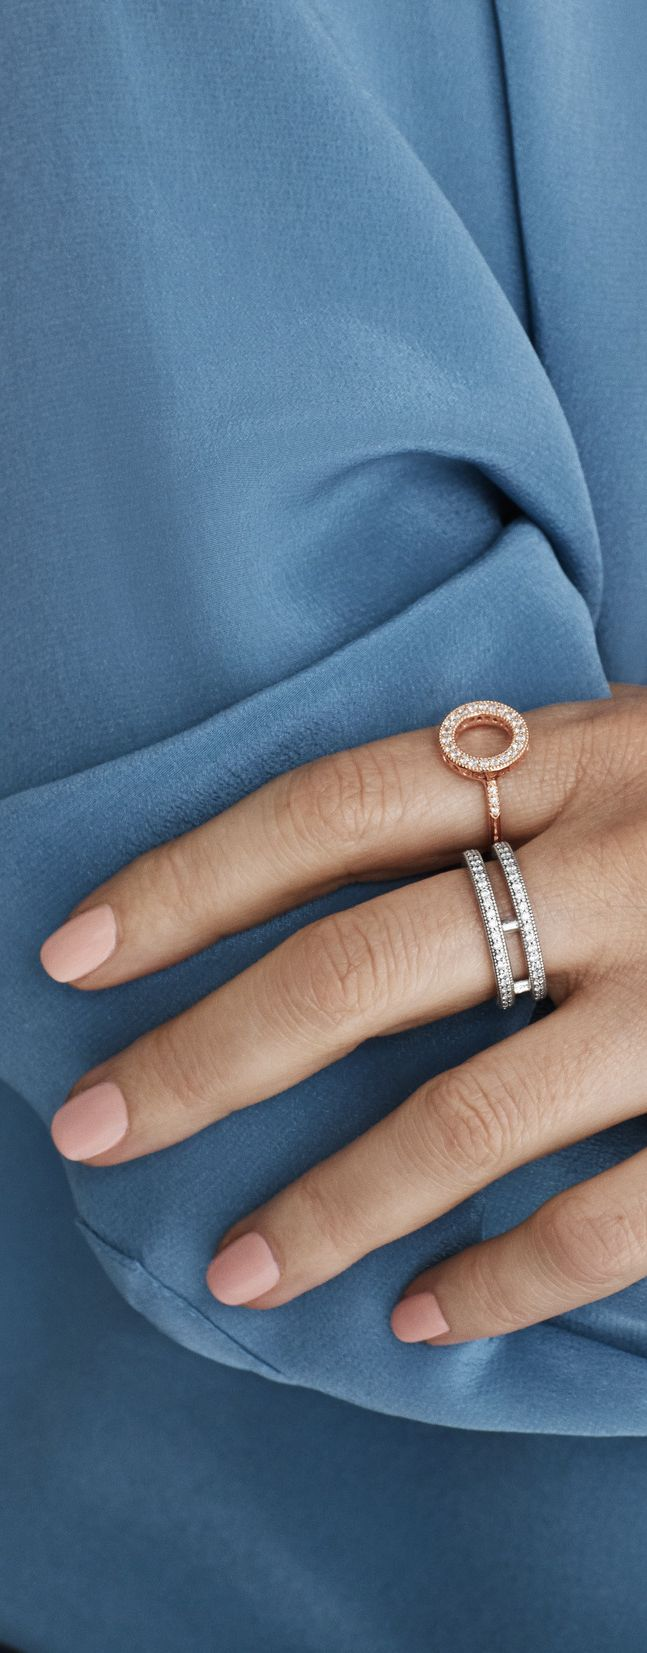 The Hearts of PANDORA sterling silver statement ring provides a modern take on stacked looks. This sterling silver statement ring doubles up the classic eternity design. Dotted with cubic zirconia, it's a lovely, glitzy ring for your finger.